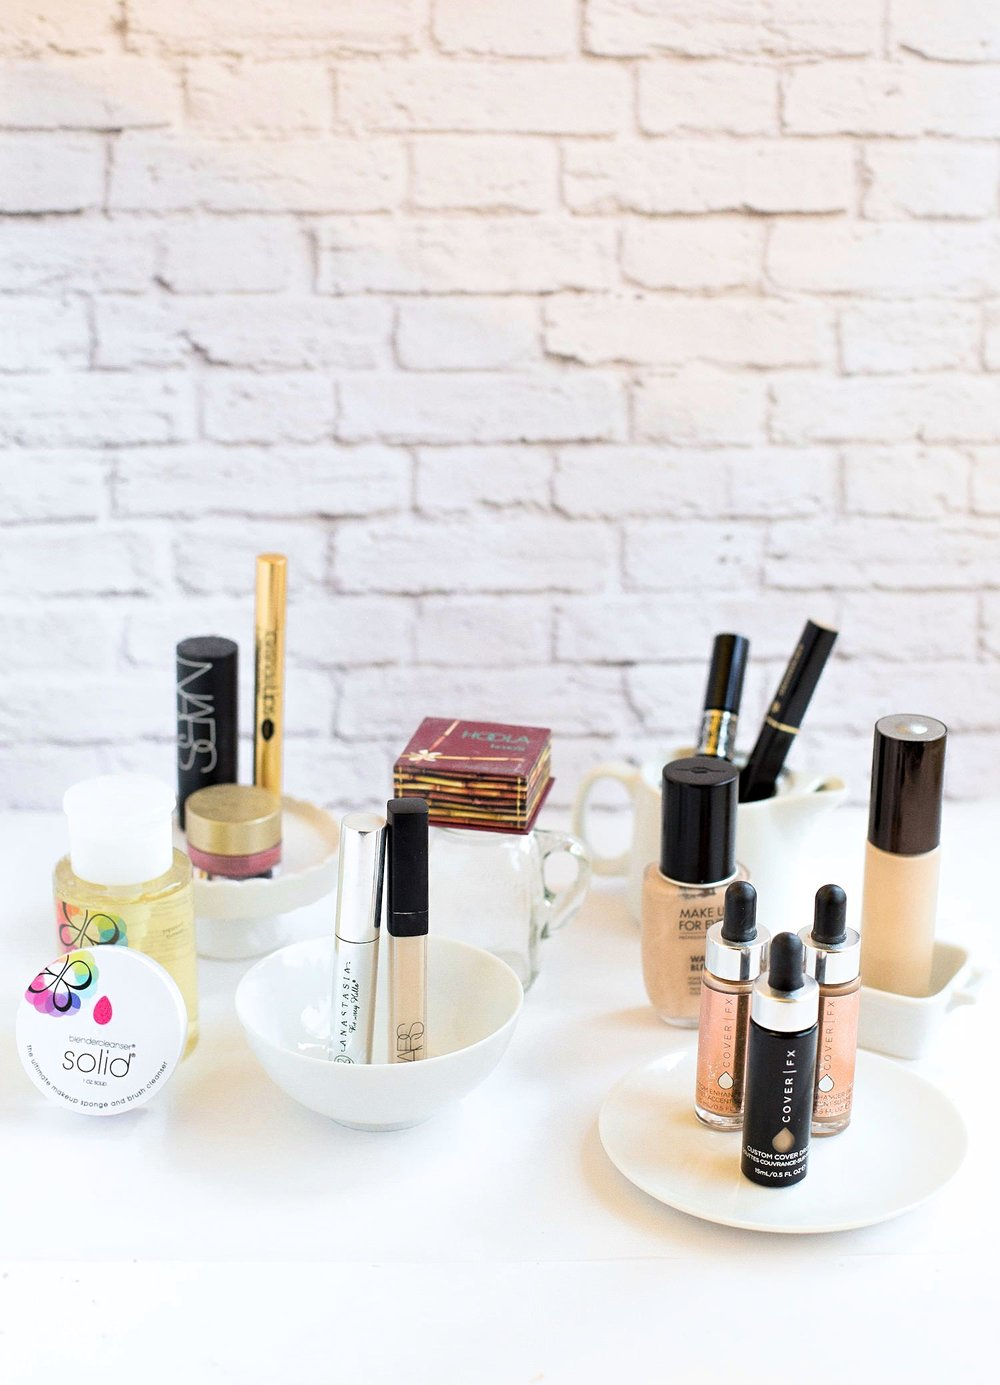 My Favorite High-End Makeup Products | TrufflesandTrends.com